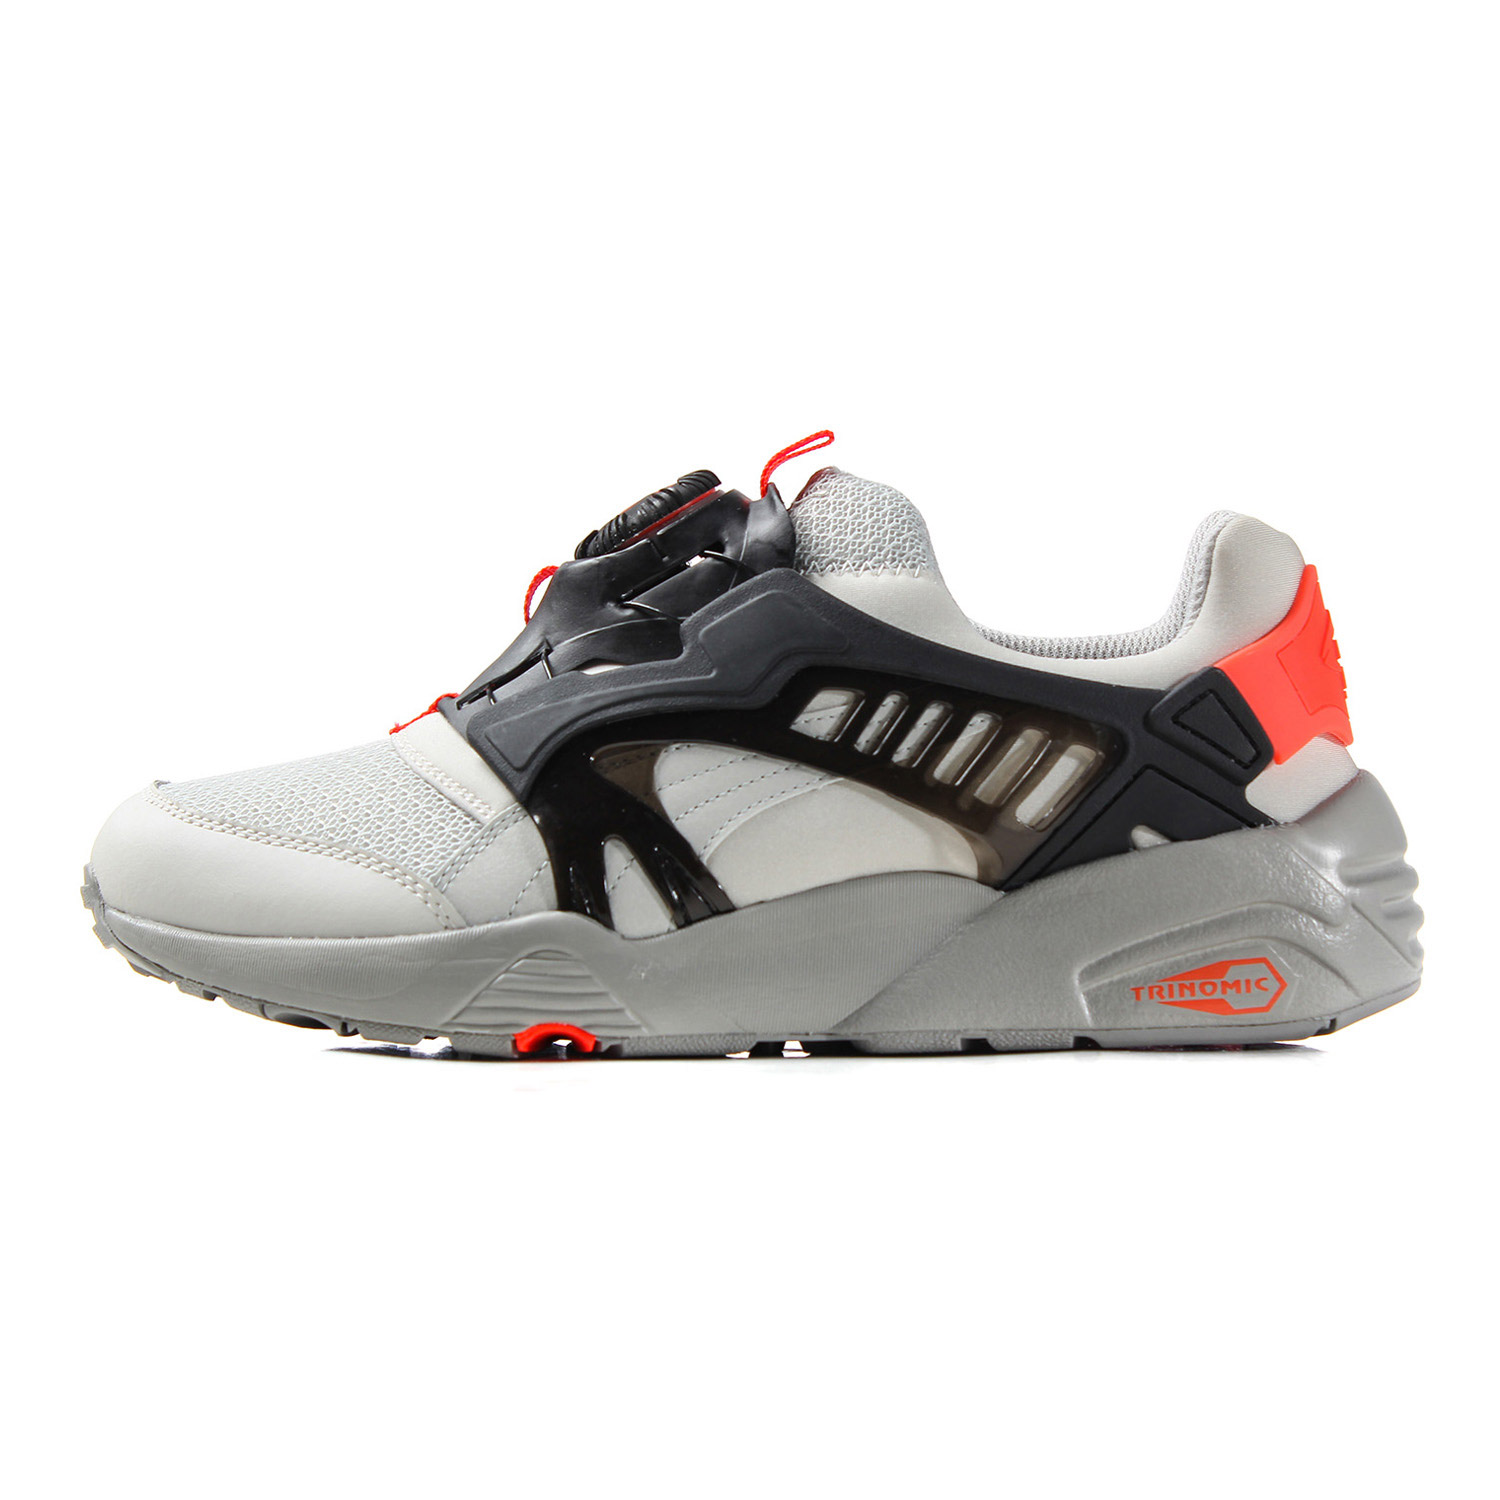 Puma Puma men s shoes casual shoes 2017 spring and Winter new sports shoes  DIC retro 36252802 35f79f147